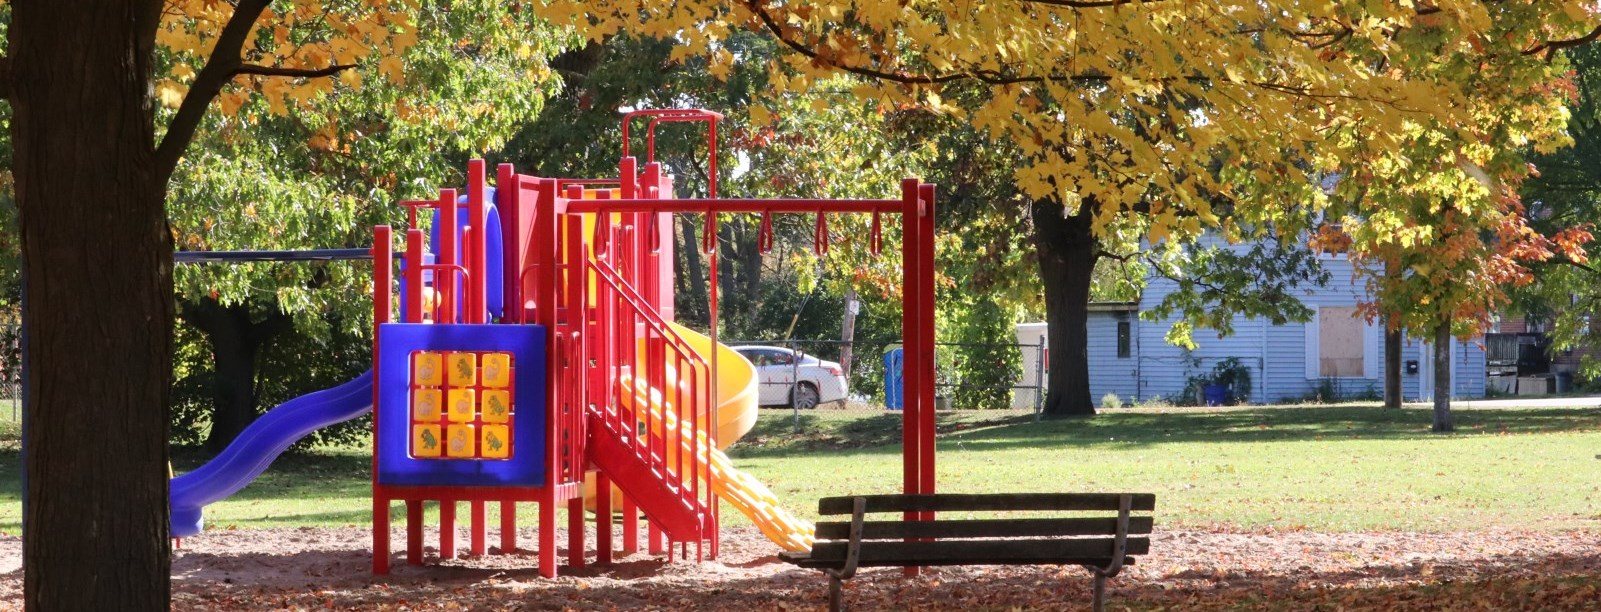 playground with fall foliage